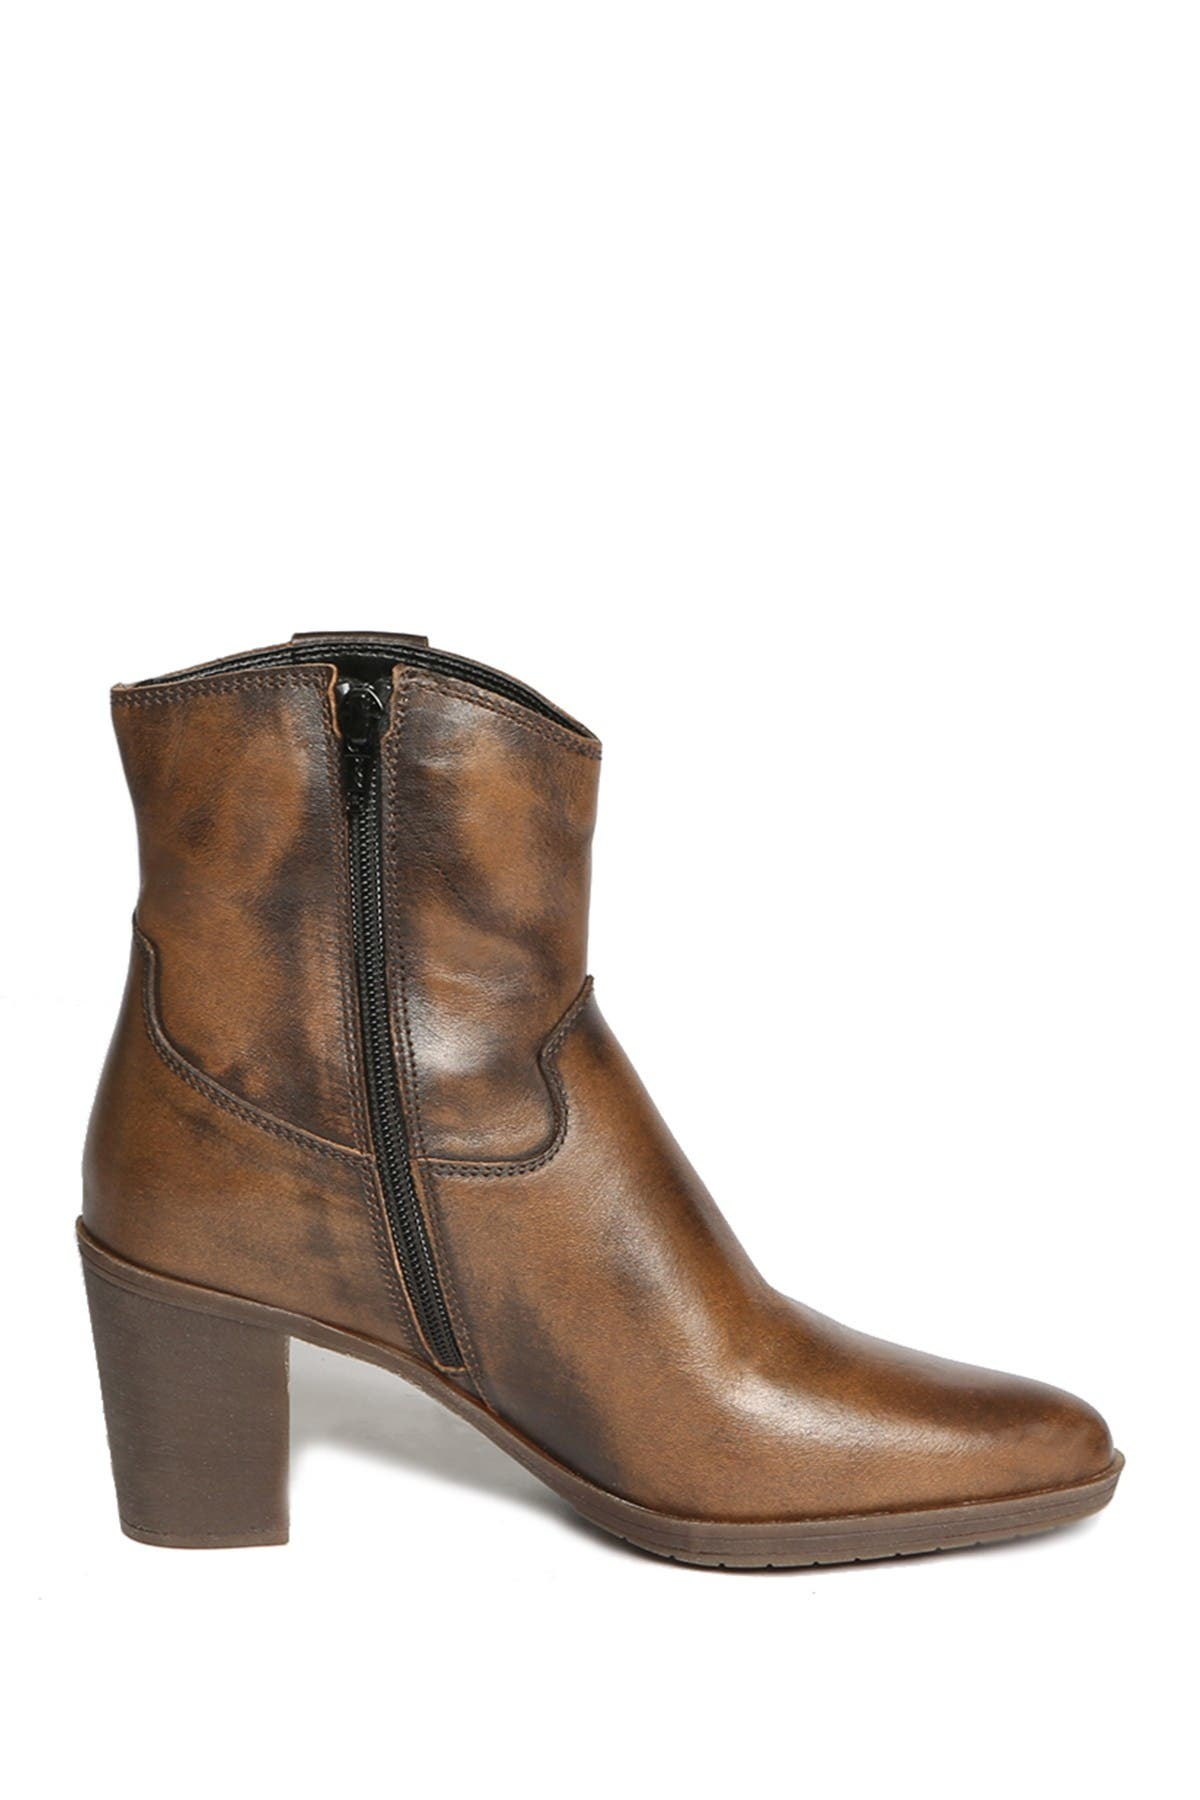 Image of THE FLEXX Two Steppin' Bootie